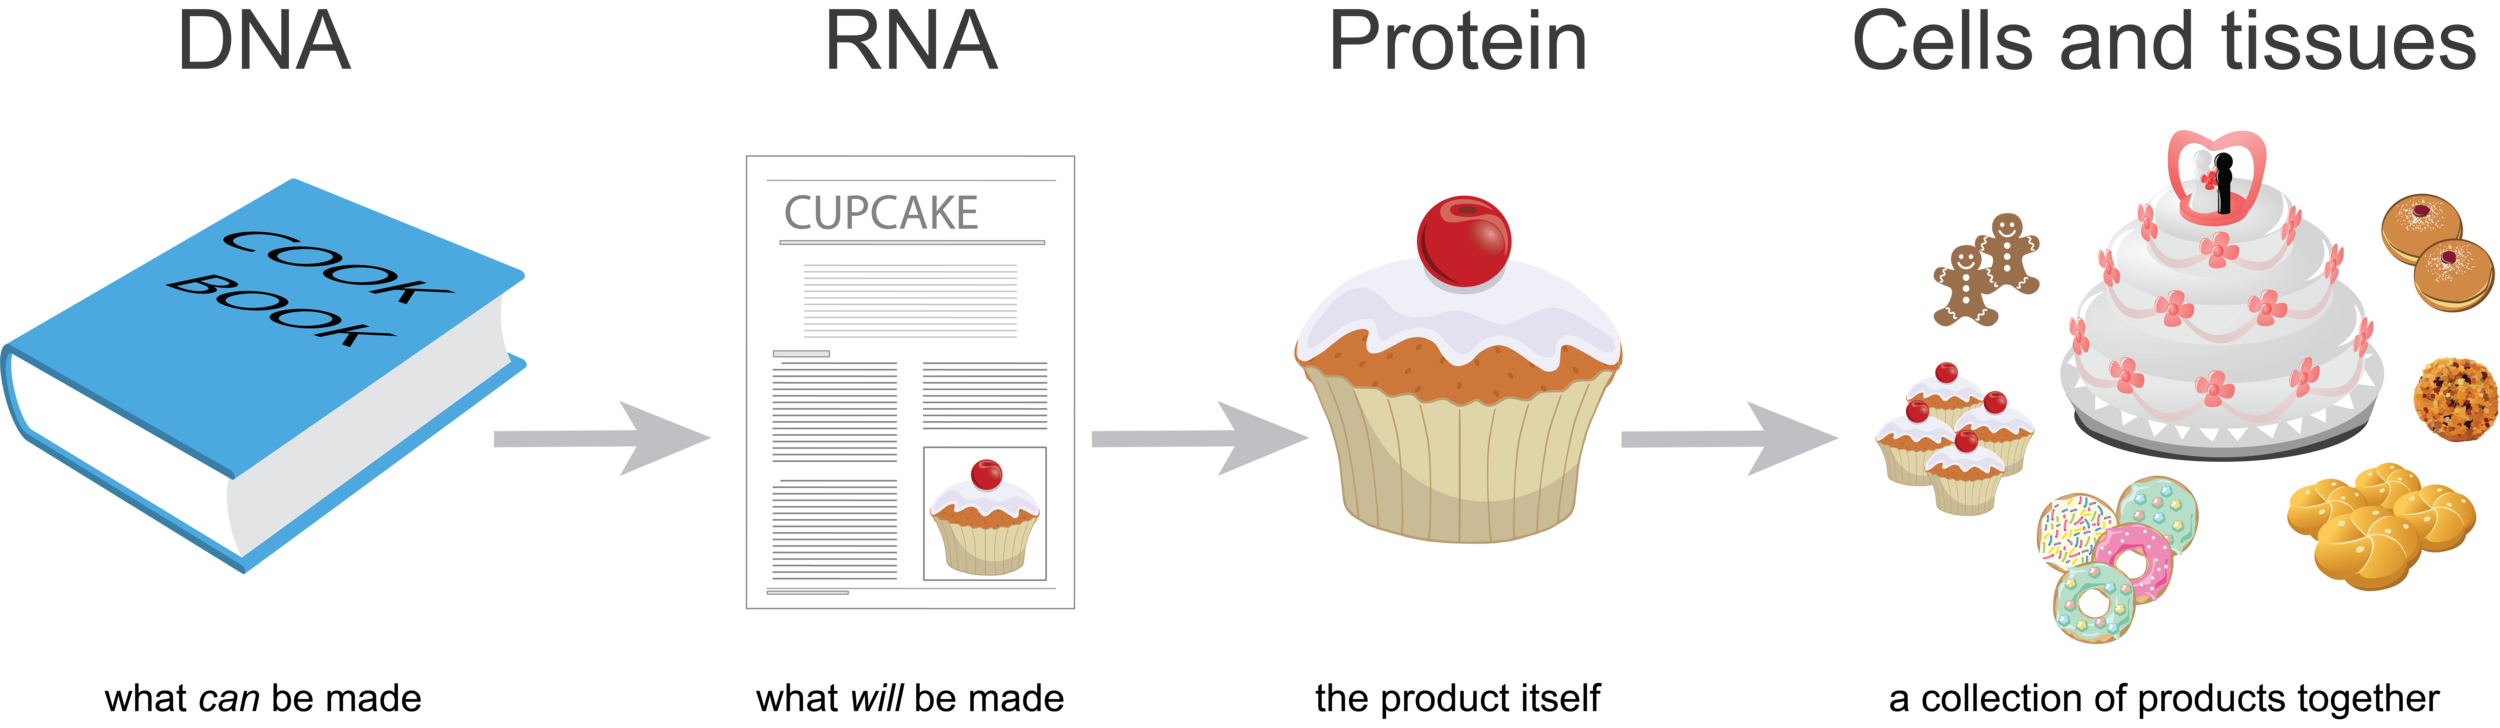 central-dogma-baking-analogy-top-panel.png